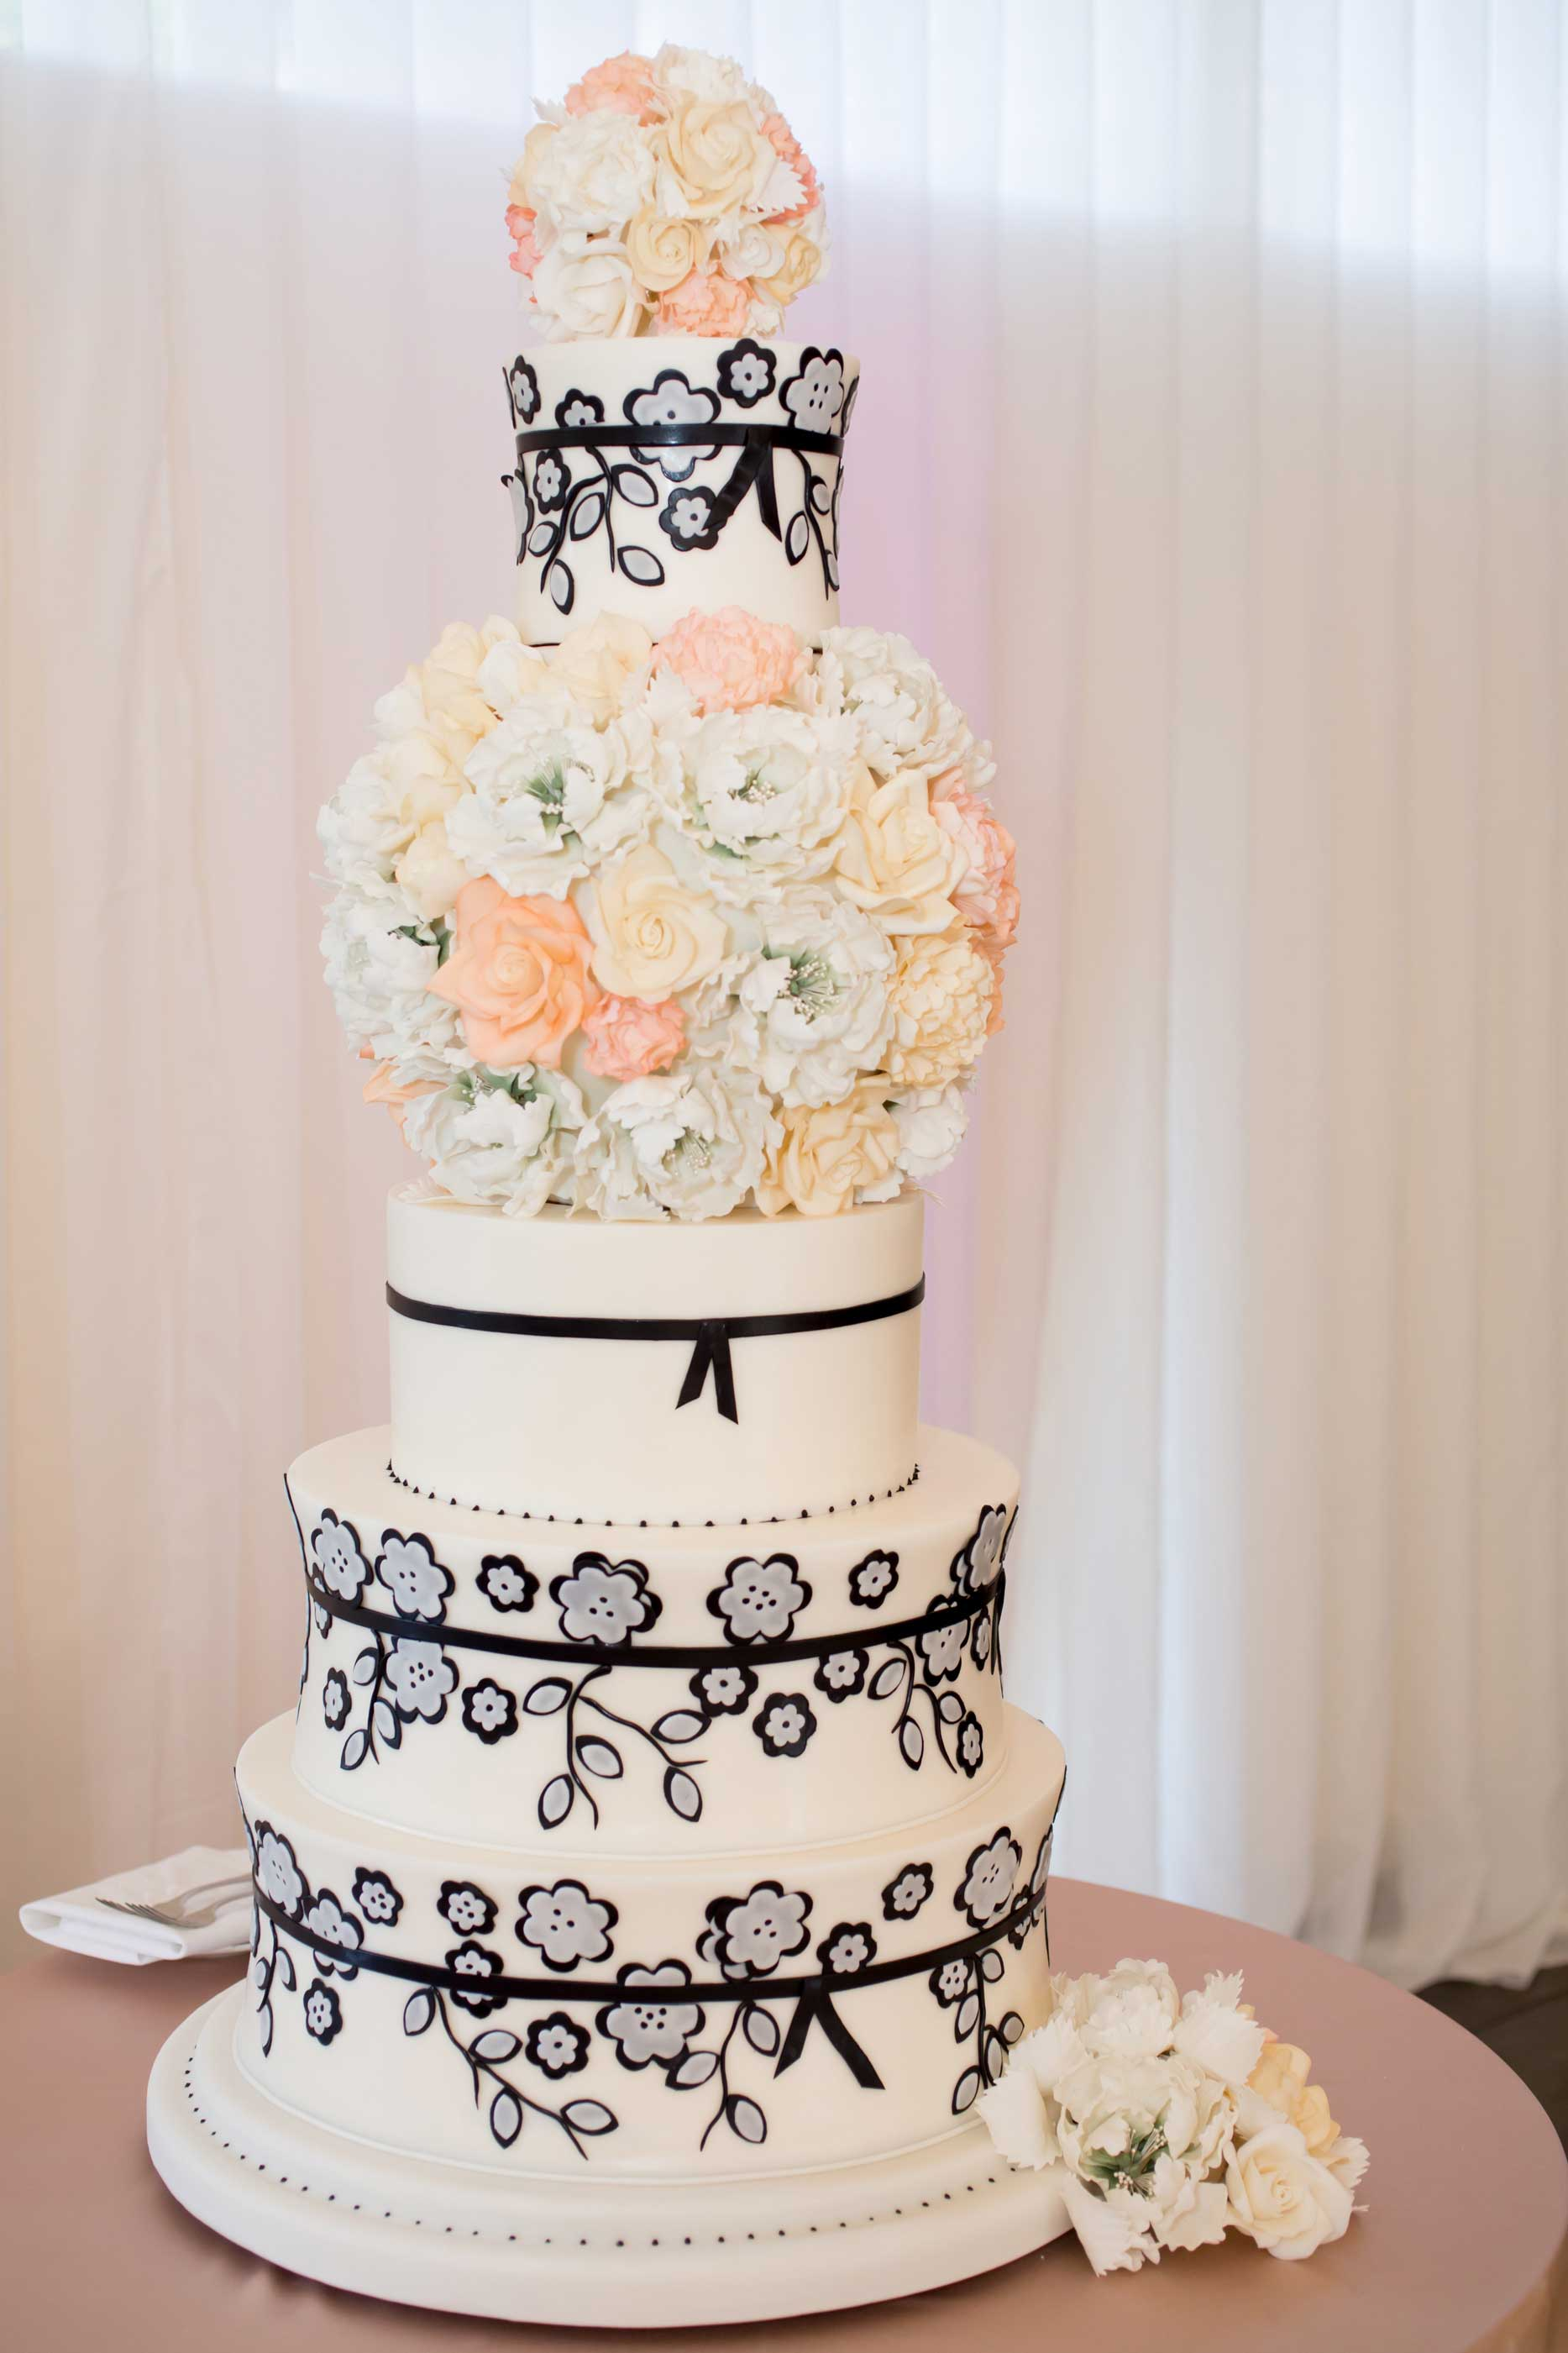 Tall white wedding cake with flower tiers and black flower design